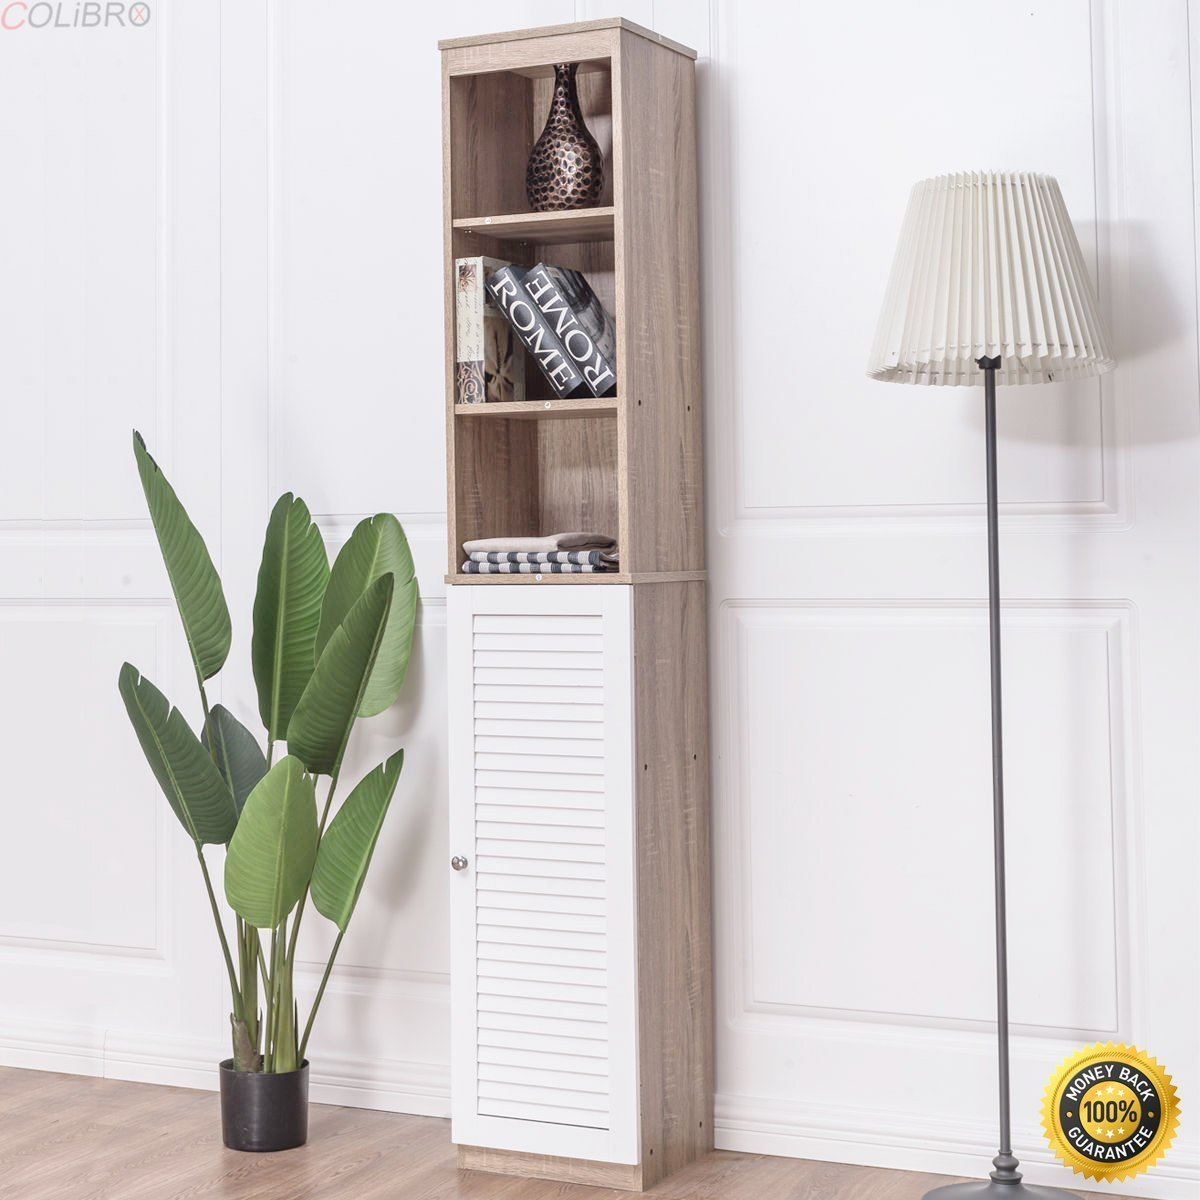 "COLIBROX--71"" Tall Wood Tower Bathroom Bedroom Shelf Organizer Storage Cabinet Louvered,bathroom floor cabinet,bathroom storage cabinets floor standing,floor cabinets with doors."